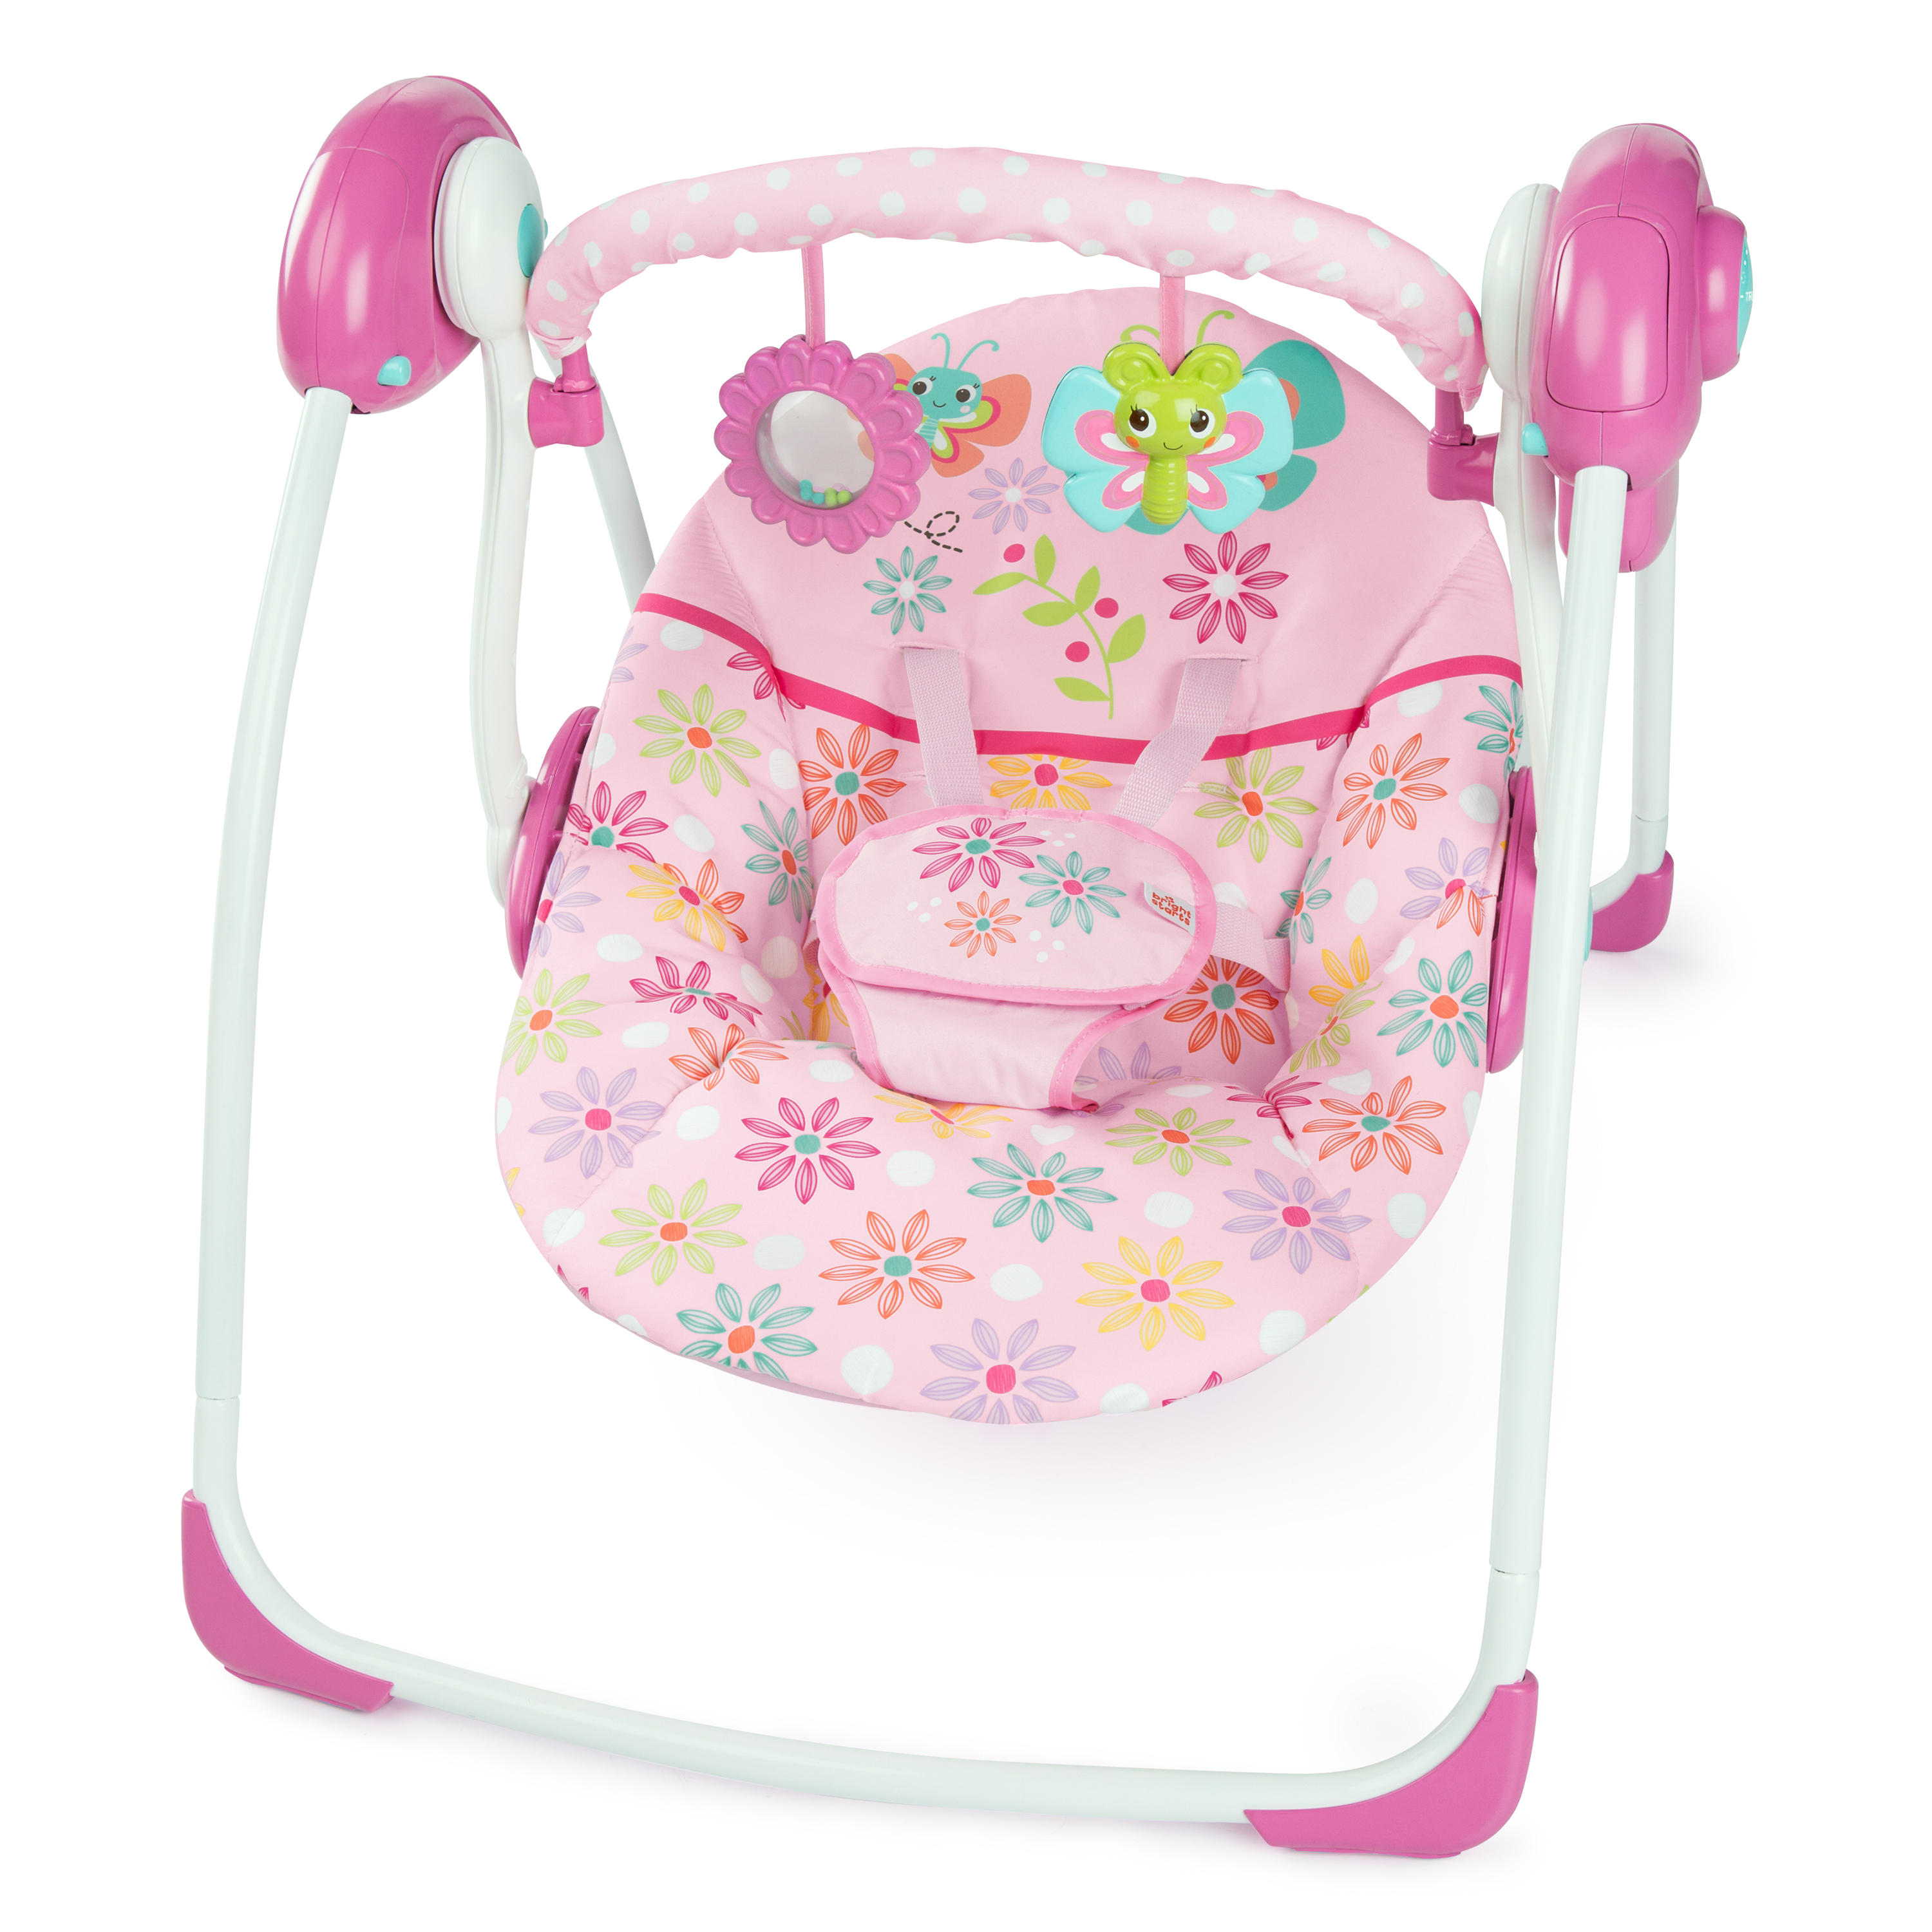 Bright Starts Butterfly Dreams Portable Swing by Bright Starts